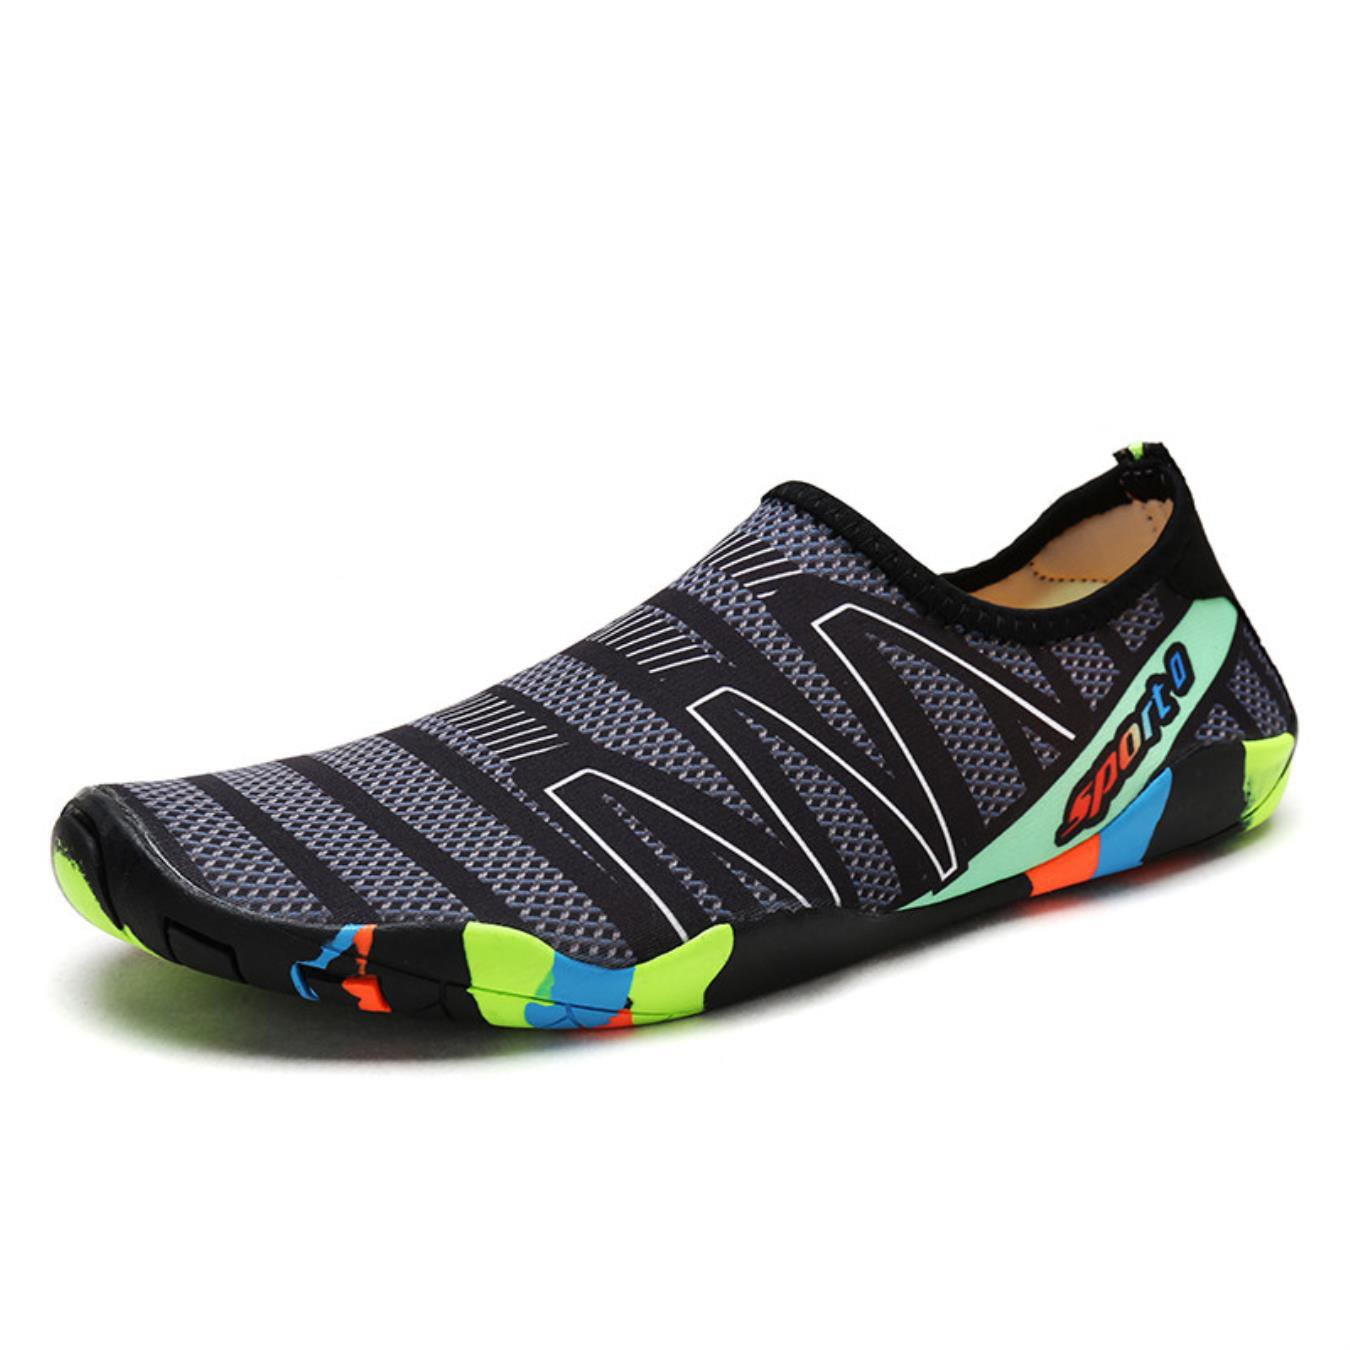 Mens Womens Water Shoes Summer Lightweight Swimming Sneakers Breathable Cool Non-slip Sneaker